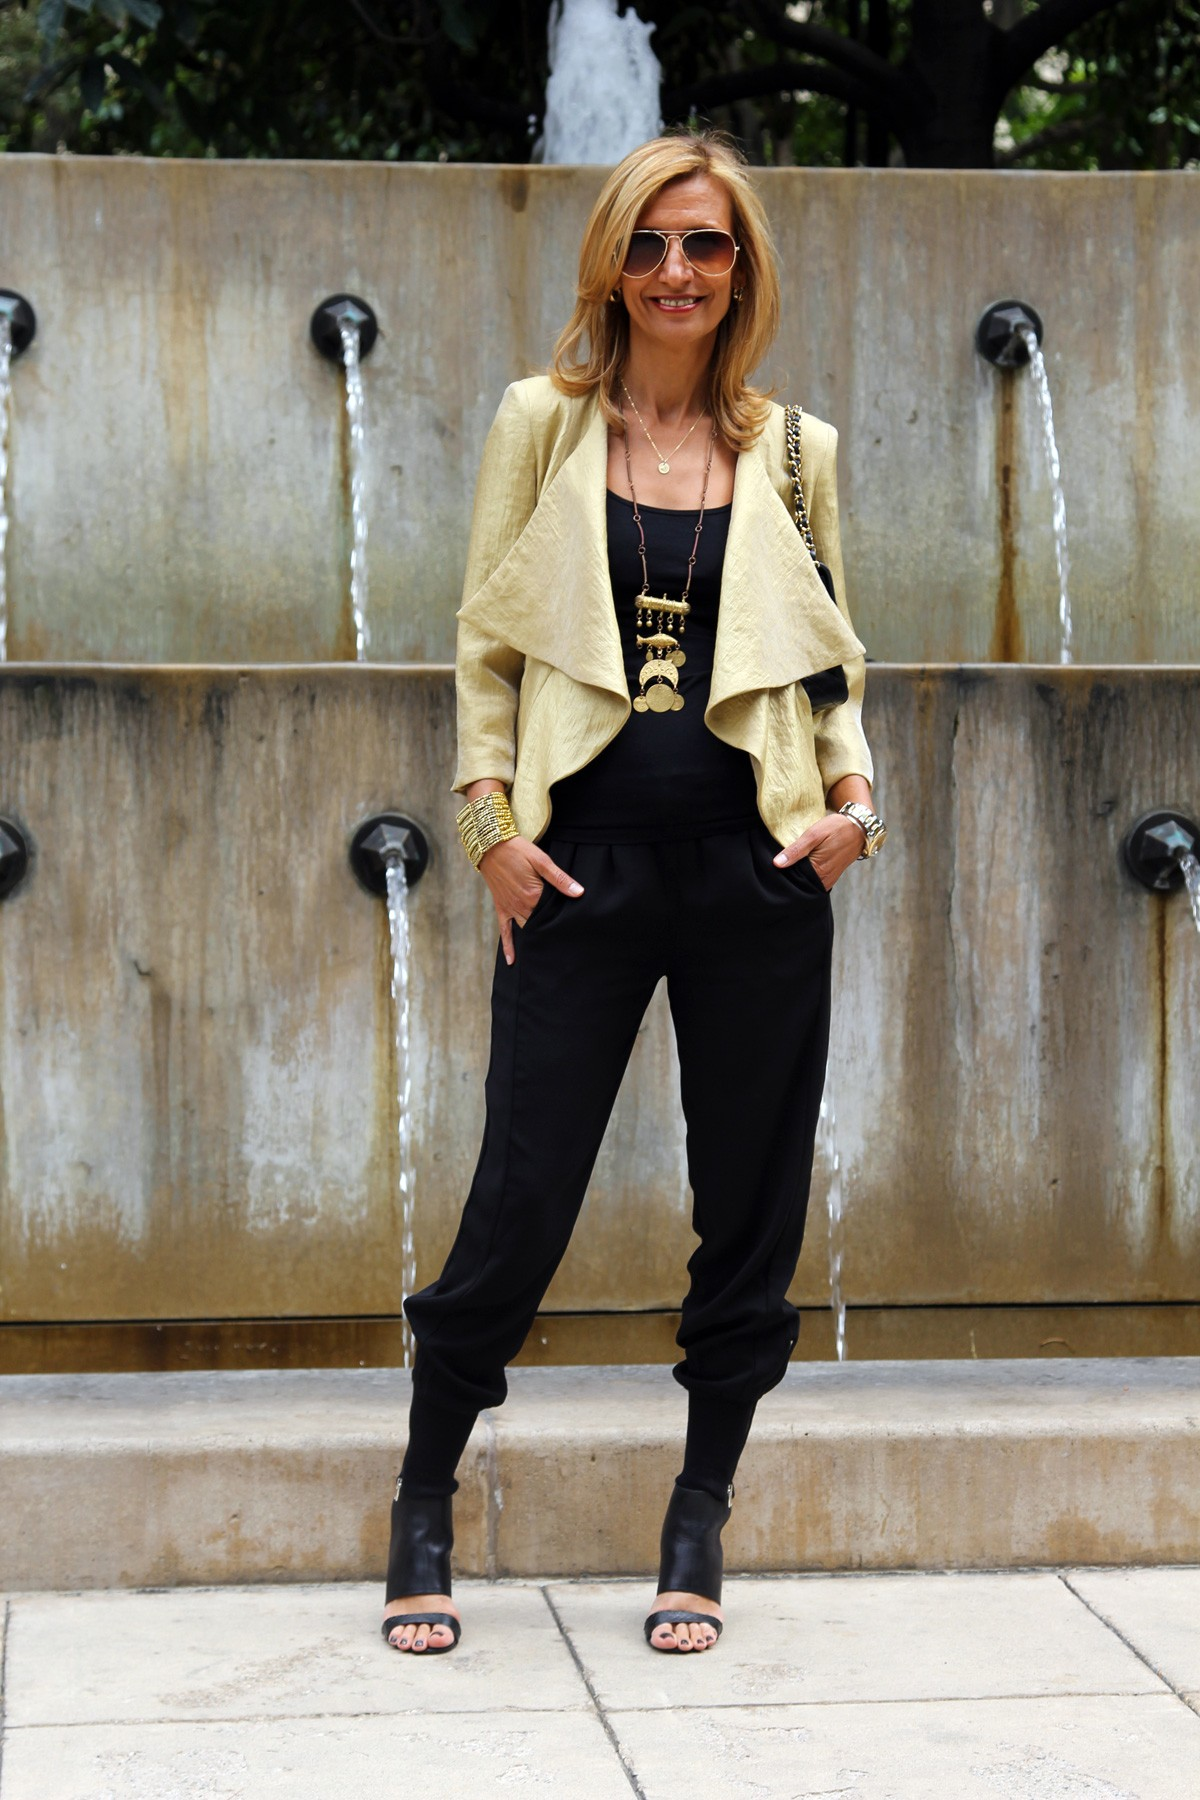 visiting-downtown-los-angeles-wearing-my-soleil-jacket-www.jacketsociety.com(4)